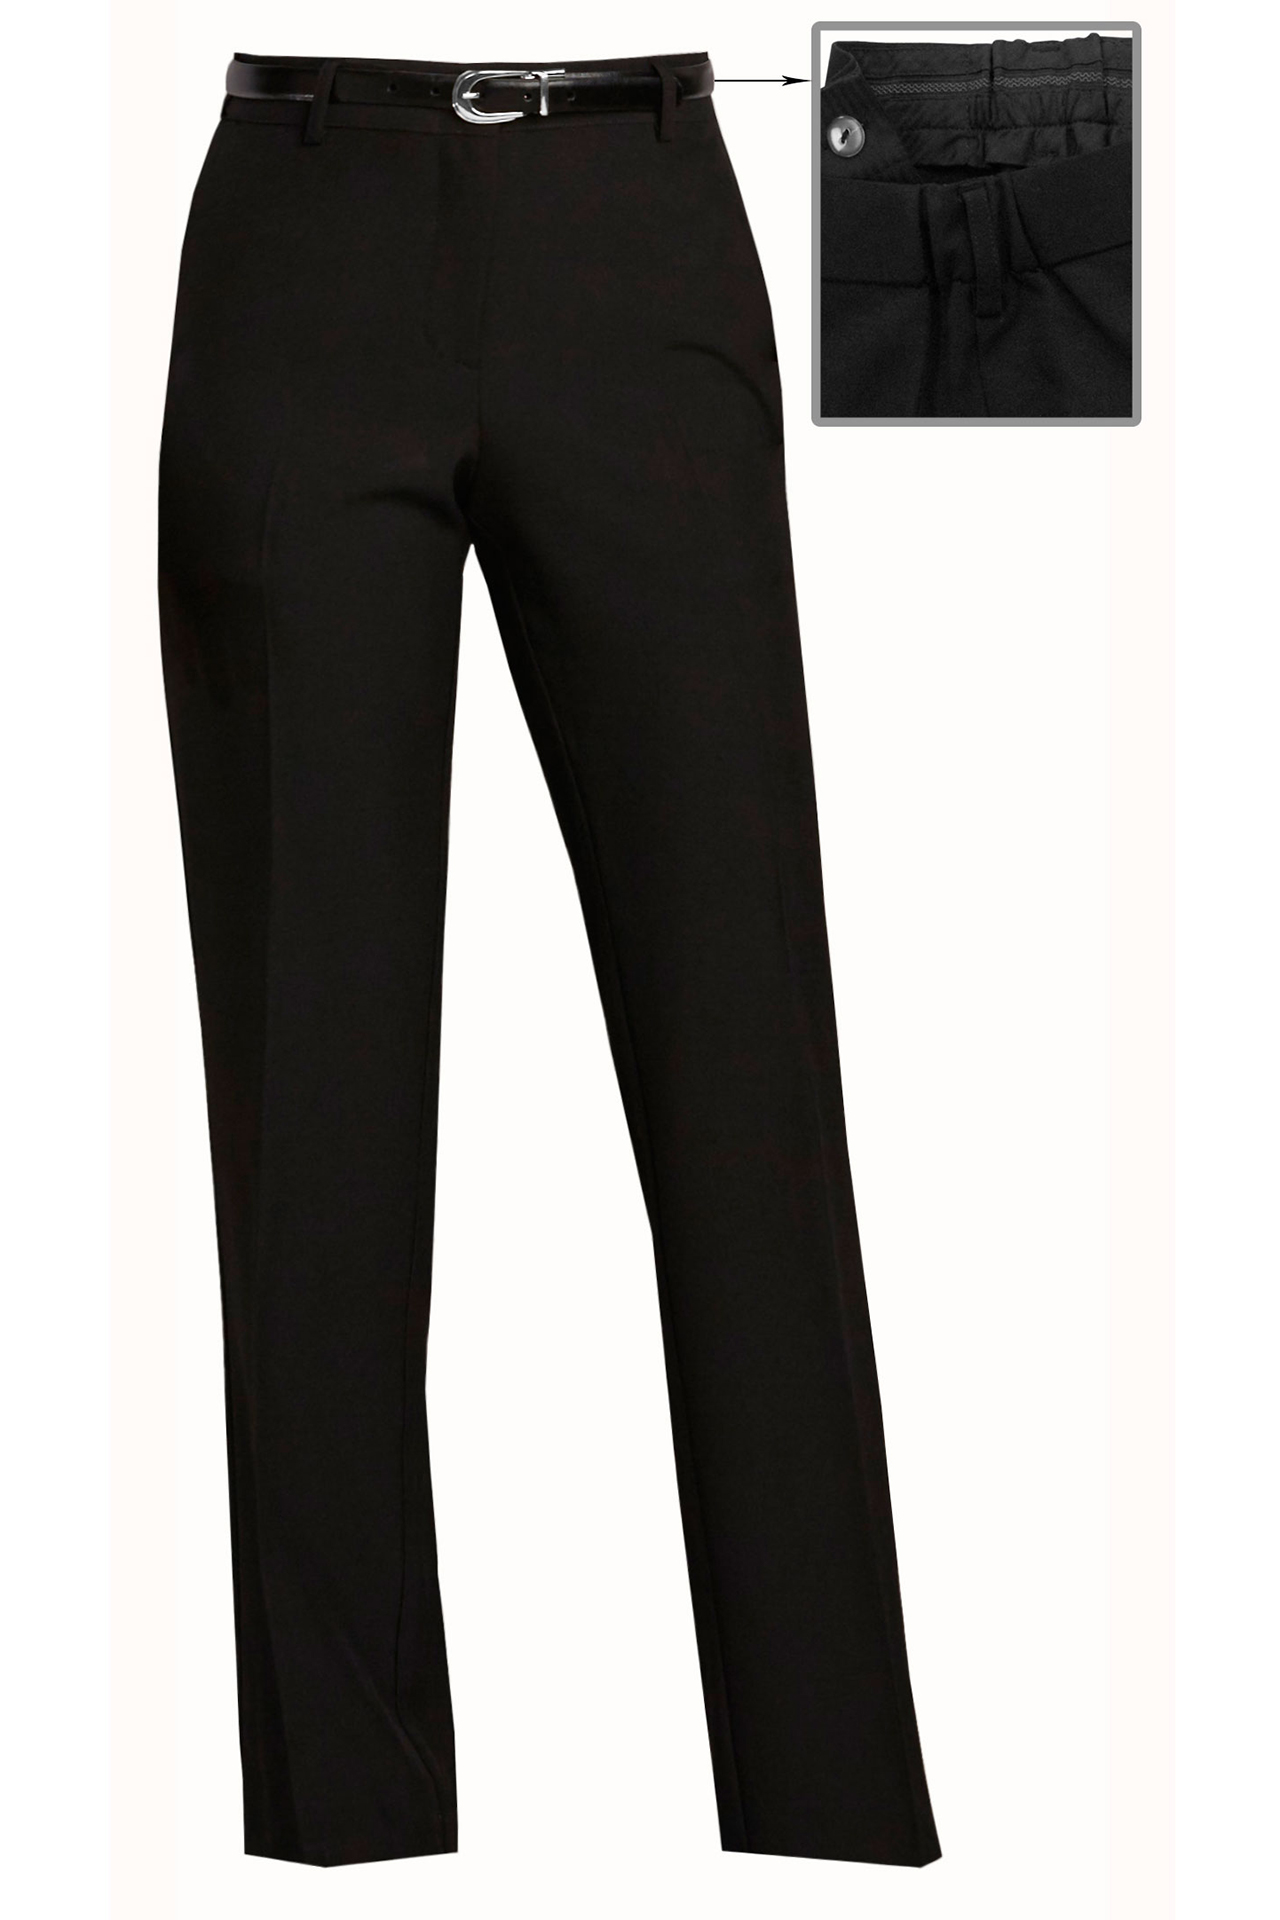 Womens Hospitality Pants, No Pockets-A Plus